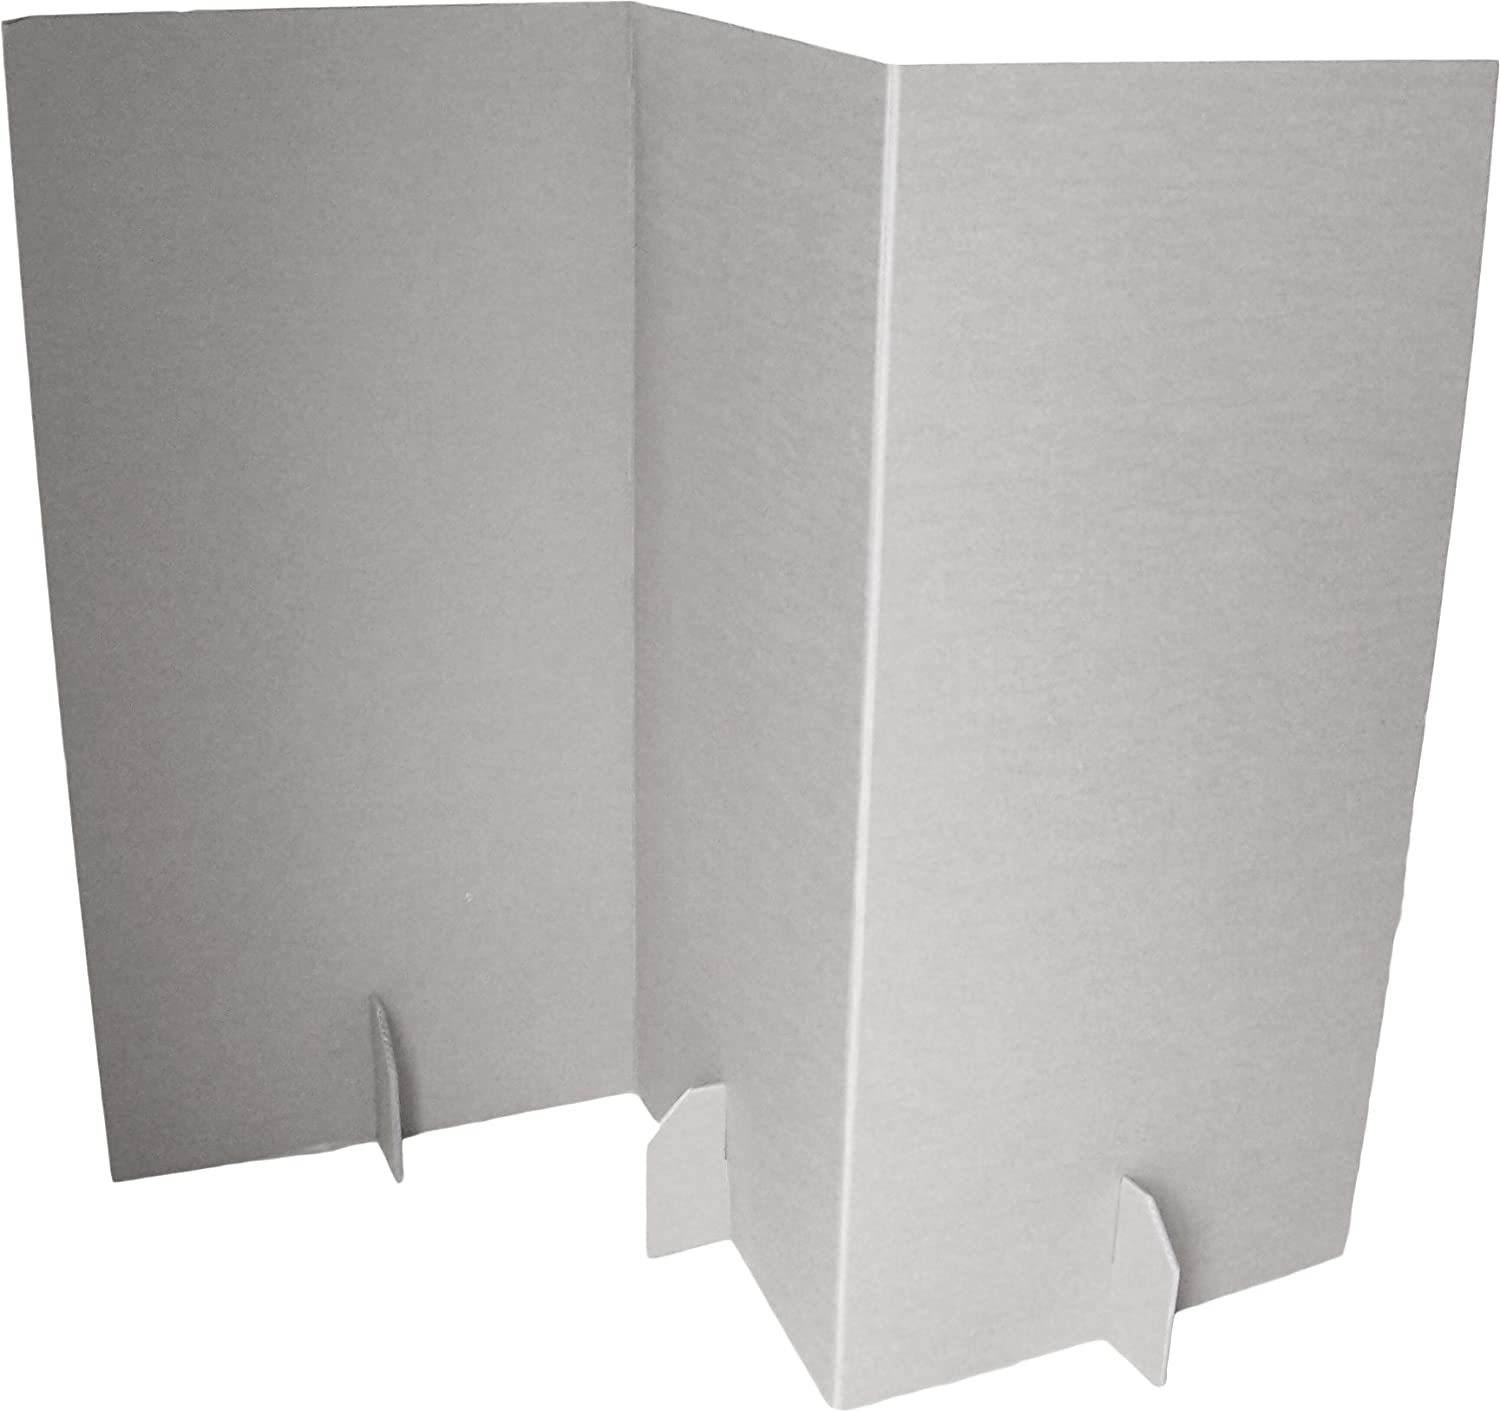 paperpod room divider cardboard white 2 piece amazon co uk